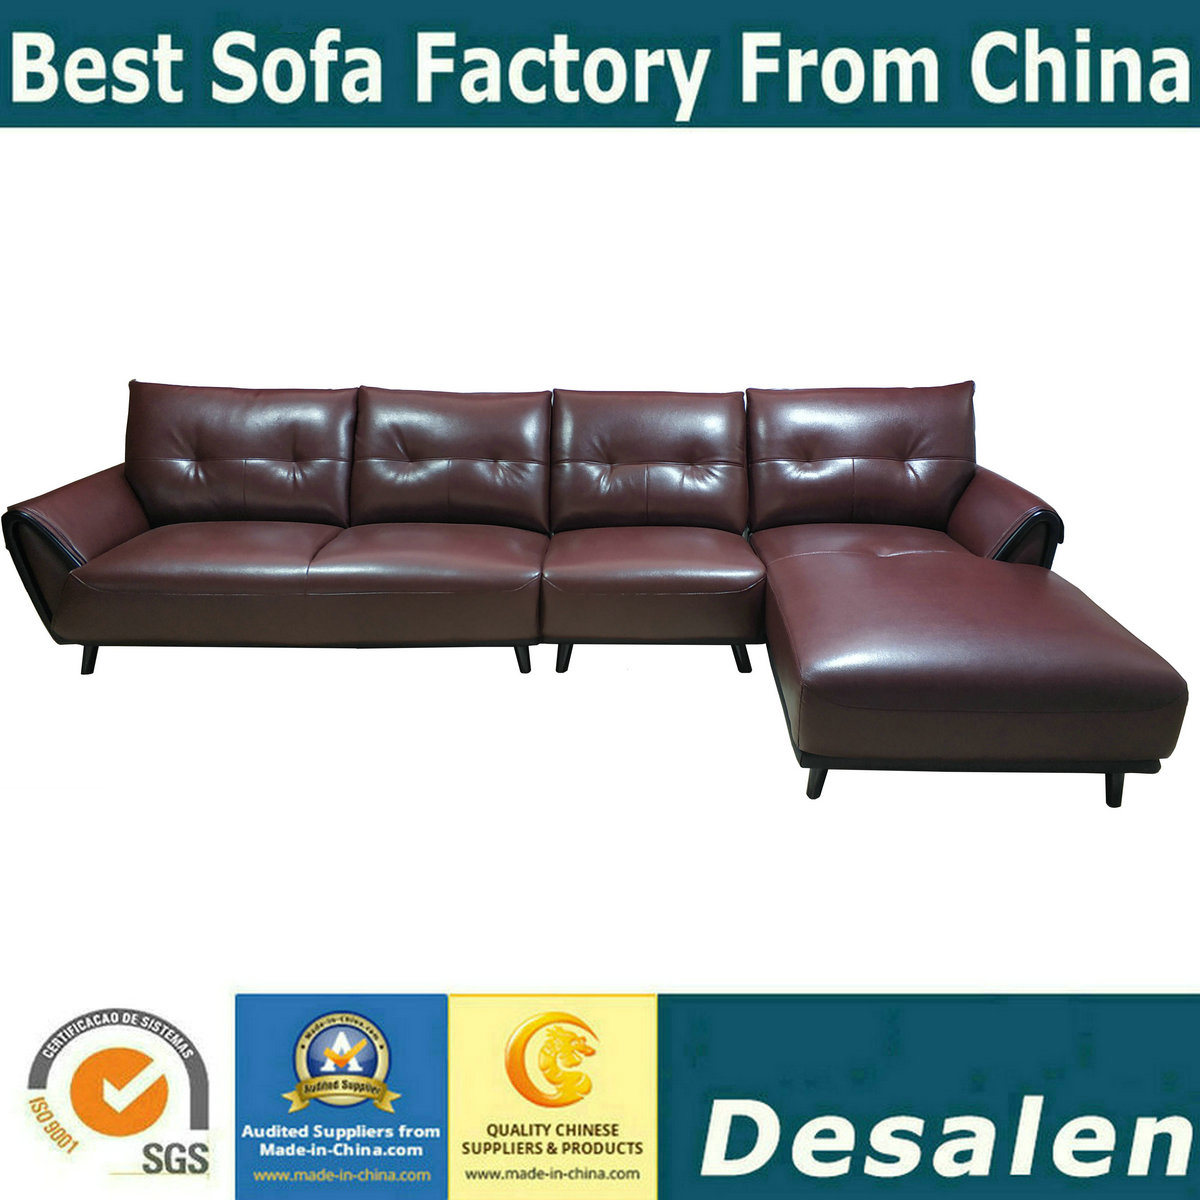 Wondrous Hot Item Brown Color Home Furniture L Shape Chaise Lounge Leather Sofa 8080 Cjindustries Chair Design For Home Cjindustriesco